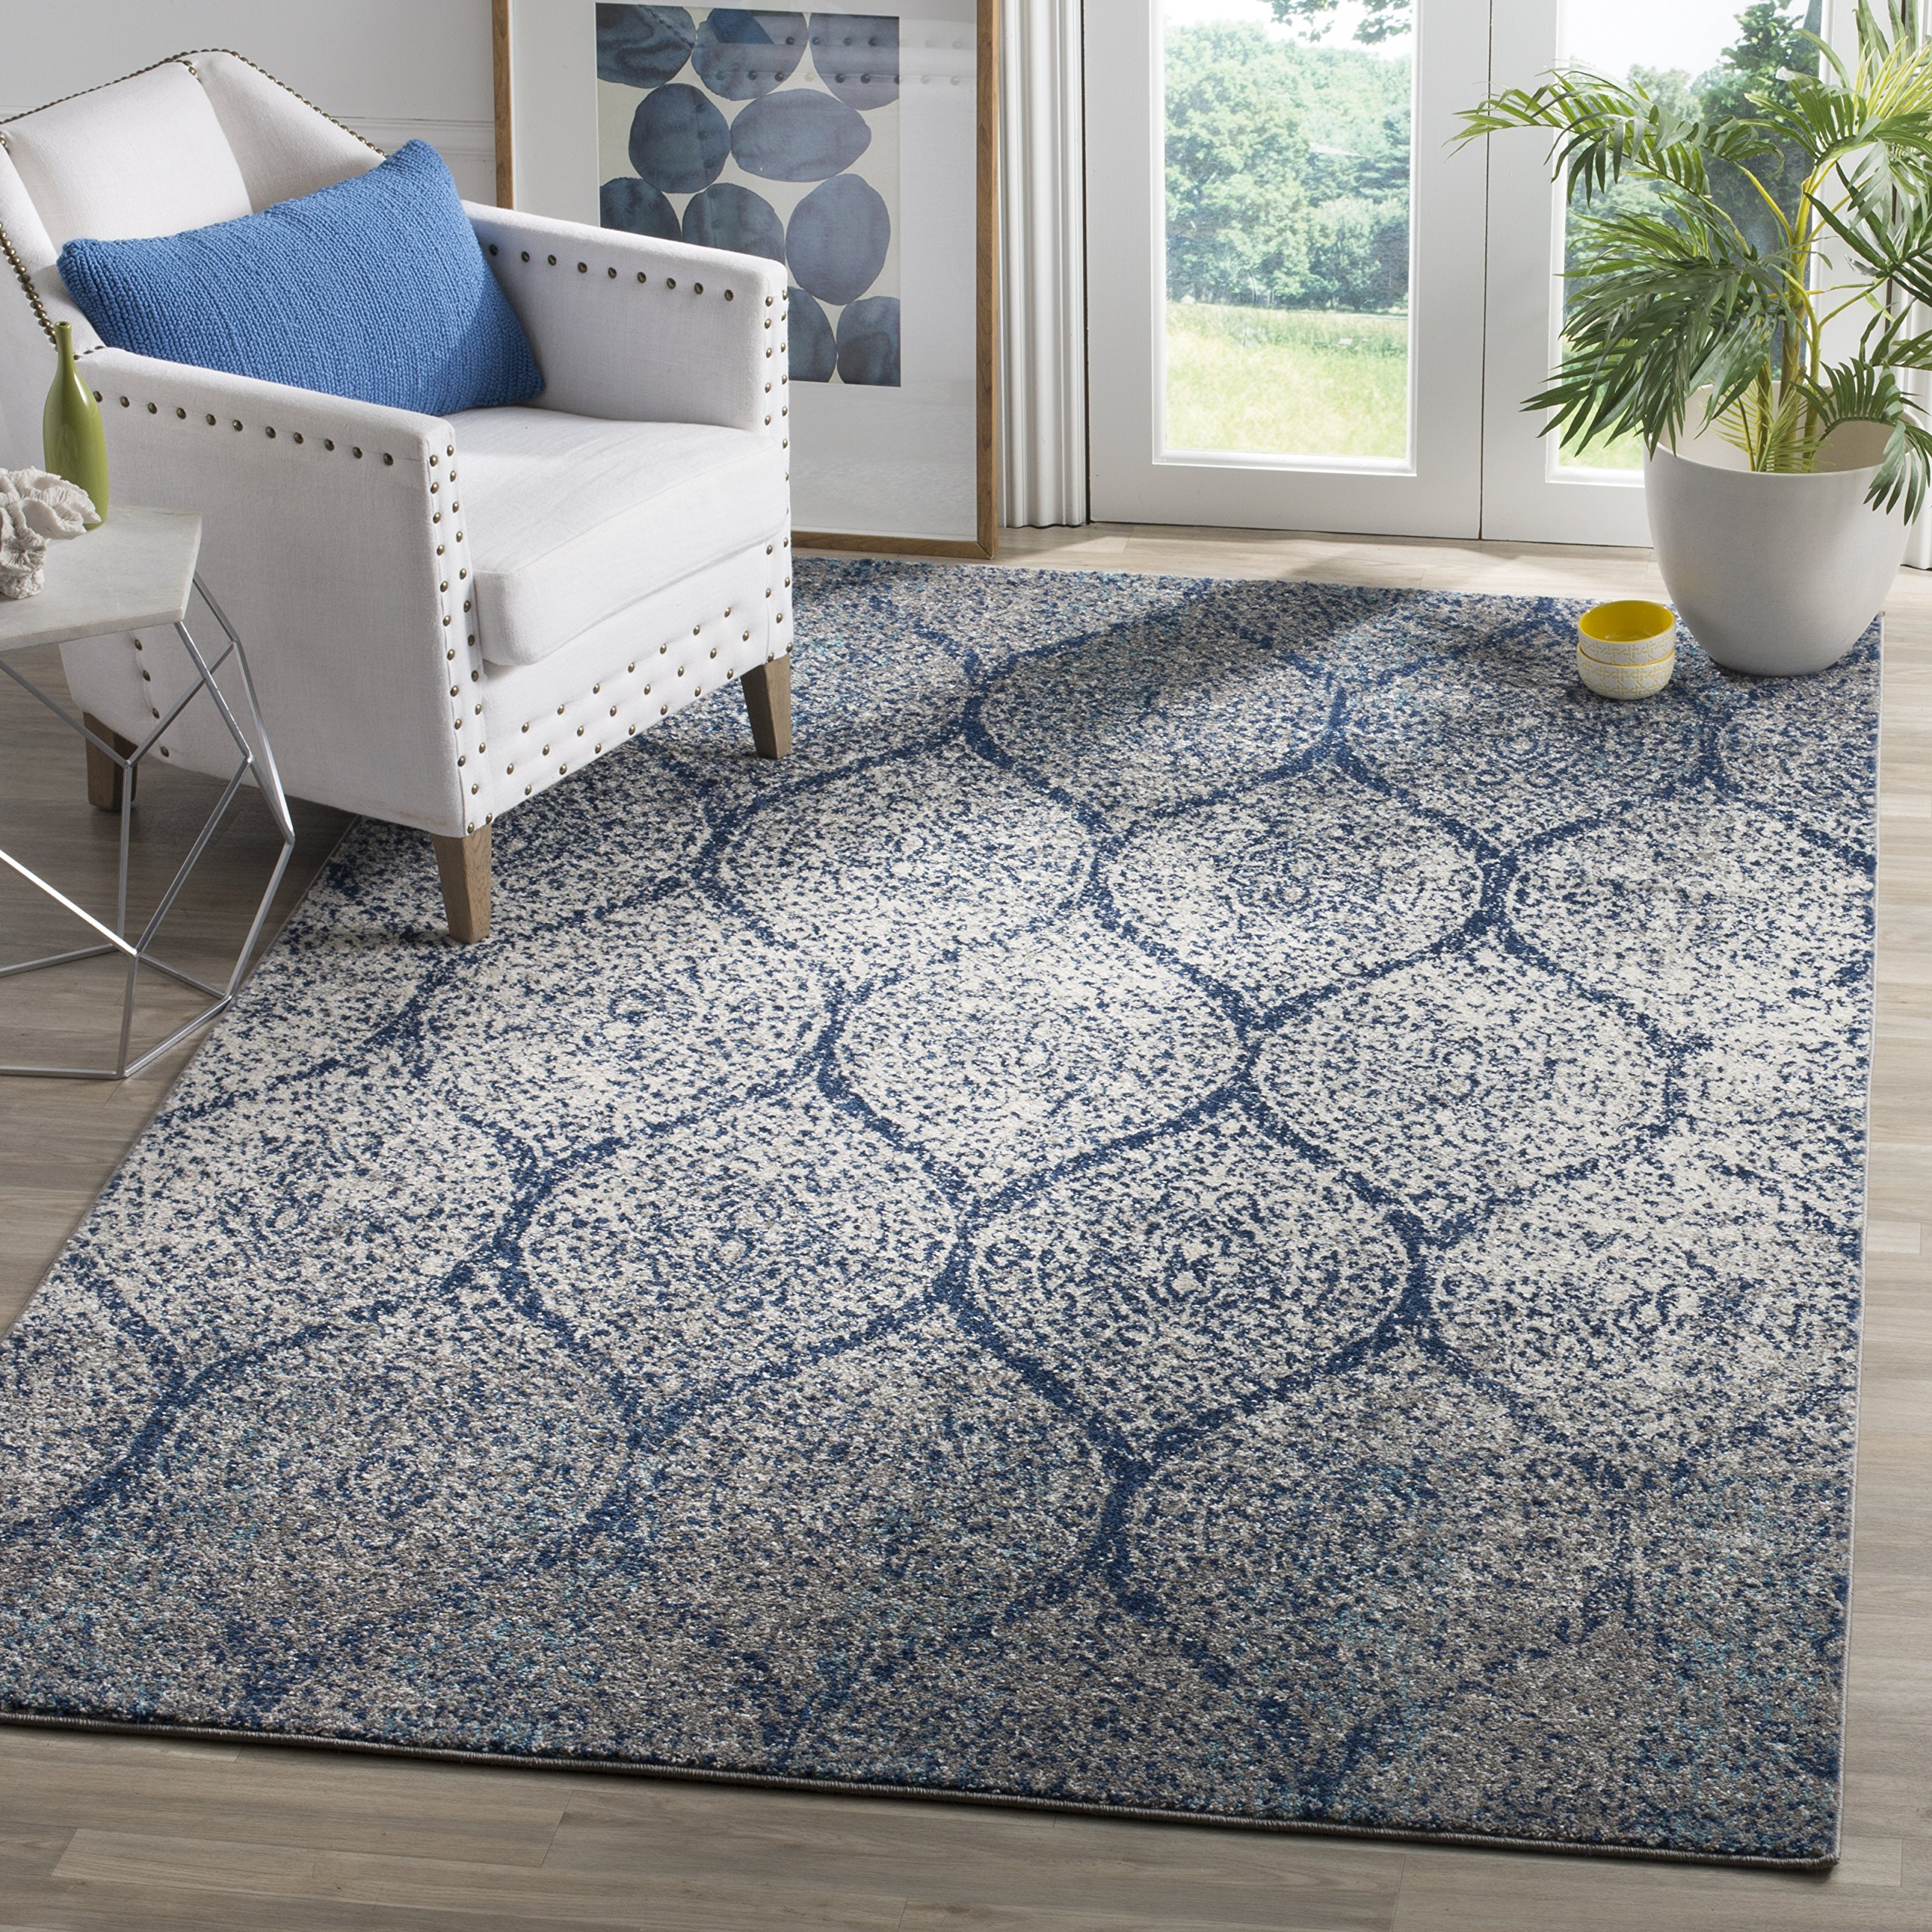 Safavieh Madison Collection MAD604G Navy and Silver Distressed Geometric Ogee Area Rug (10' x 14')